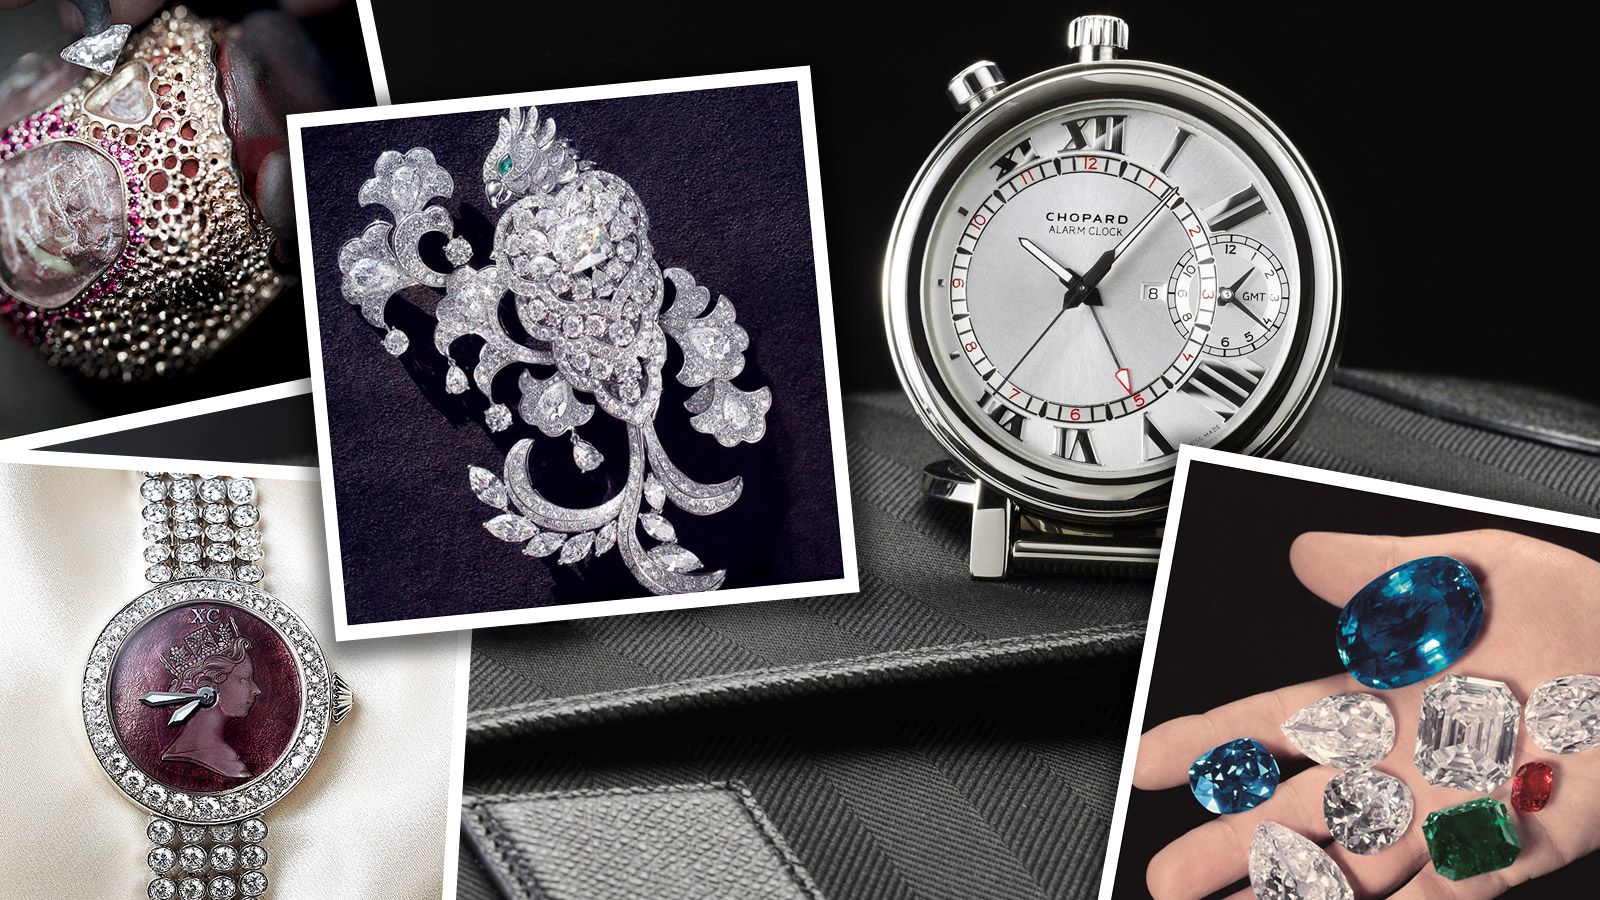 Luxurious Magazine news and articles on jewellery and watches